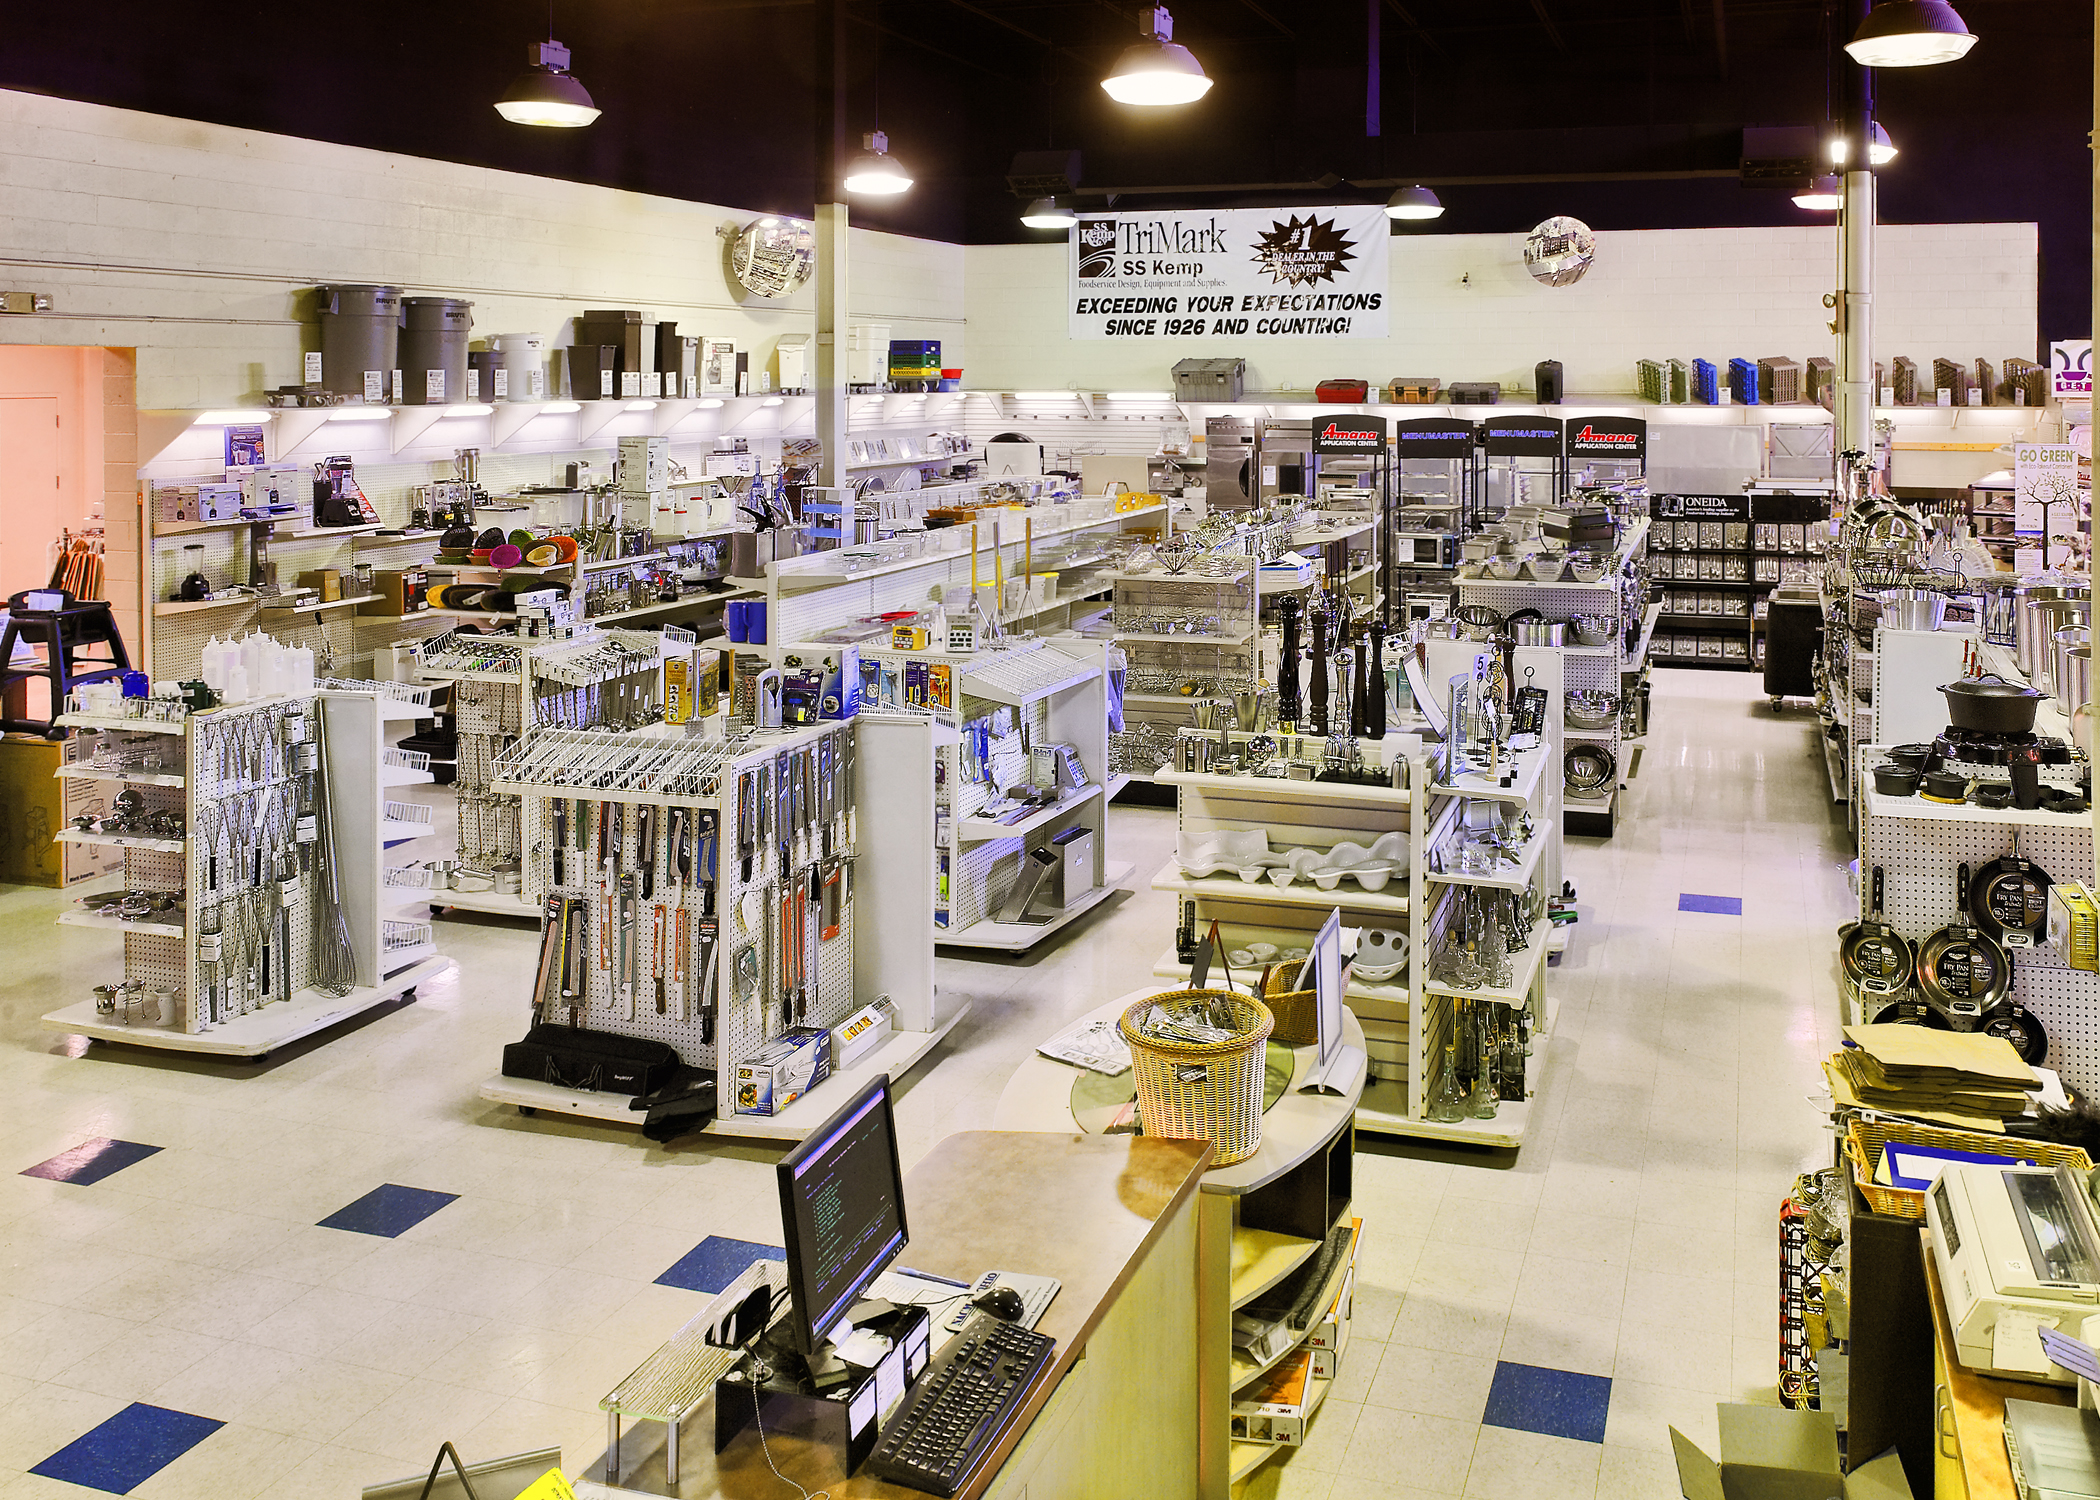 TriMark SS Kemp Showroom, Test Kitchen and Training Facility